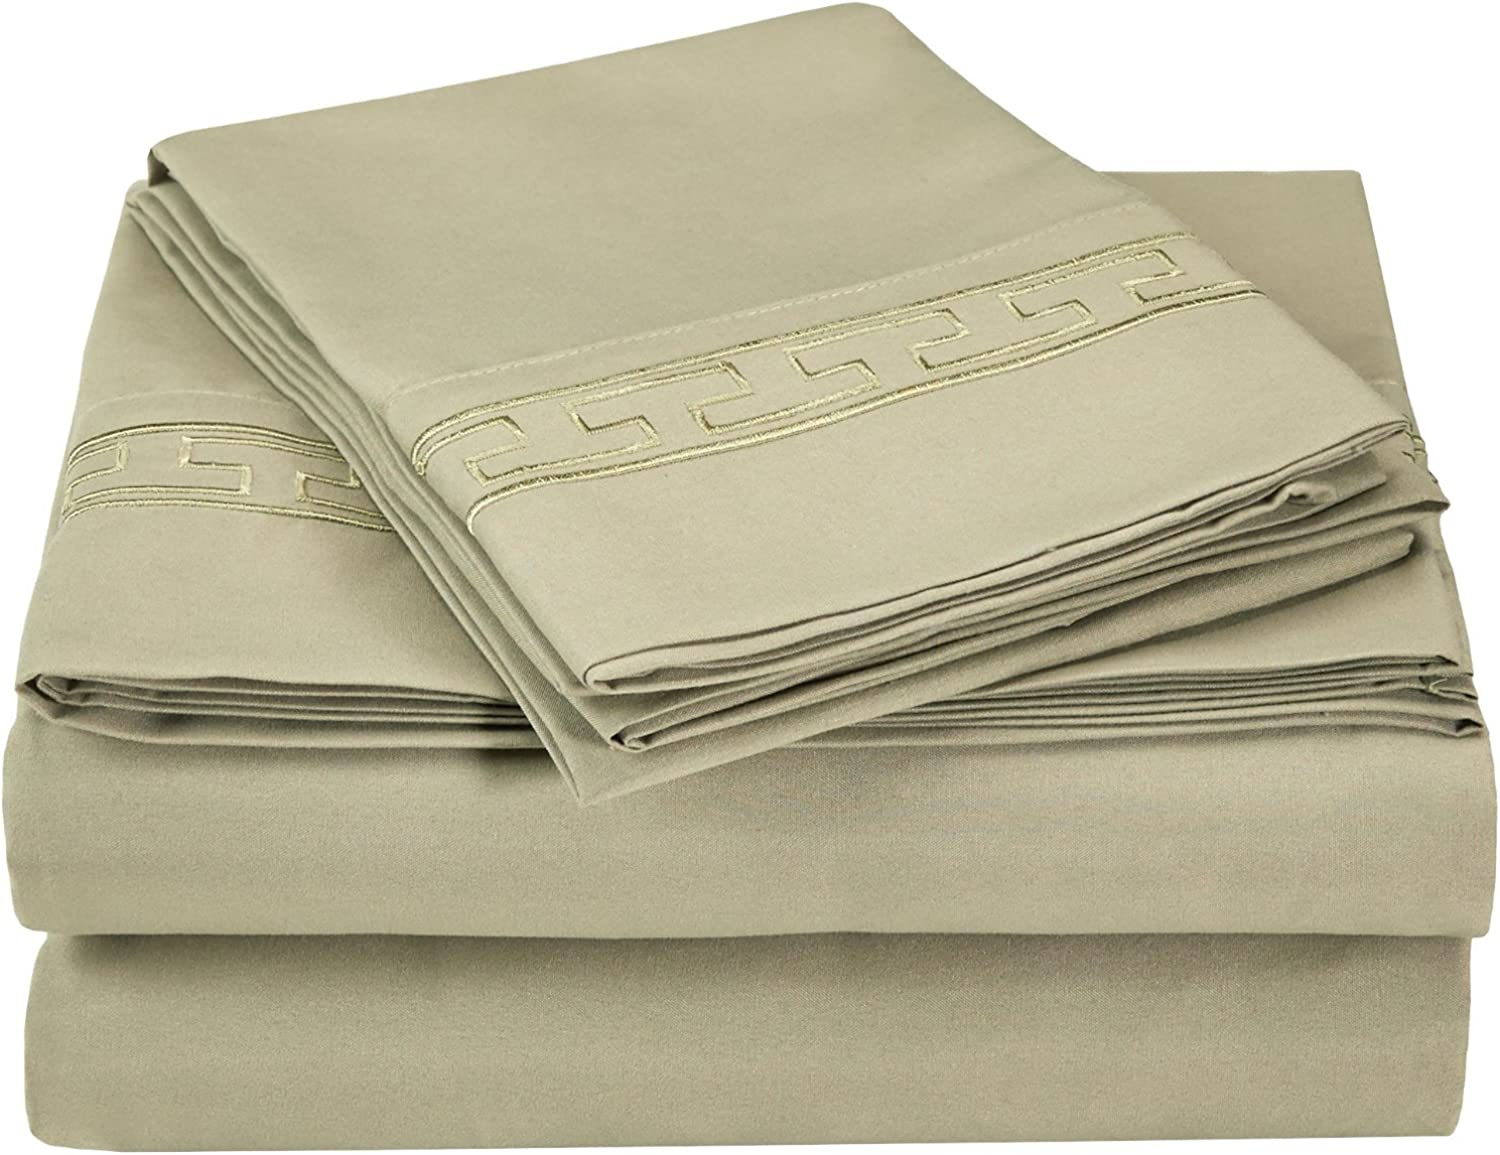 LUXOR TREASURES Super Soft Light Weight, 100% Brushed Microfiber, Queen, Wrinkle Resistant, 4-Piece Sheet Set,Tan with Regal Embroidery in Gift Box by Luxor Treasures